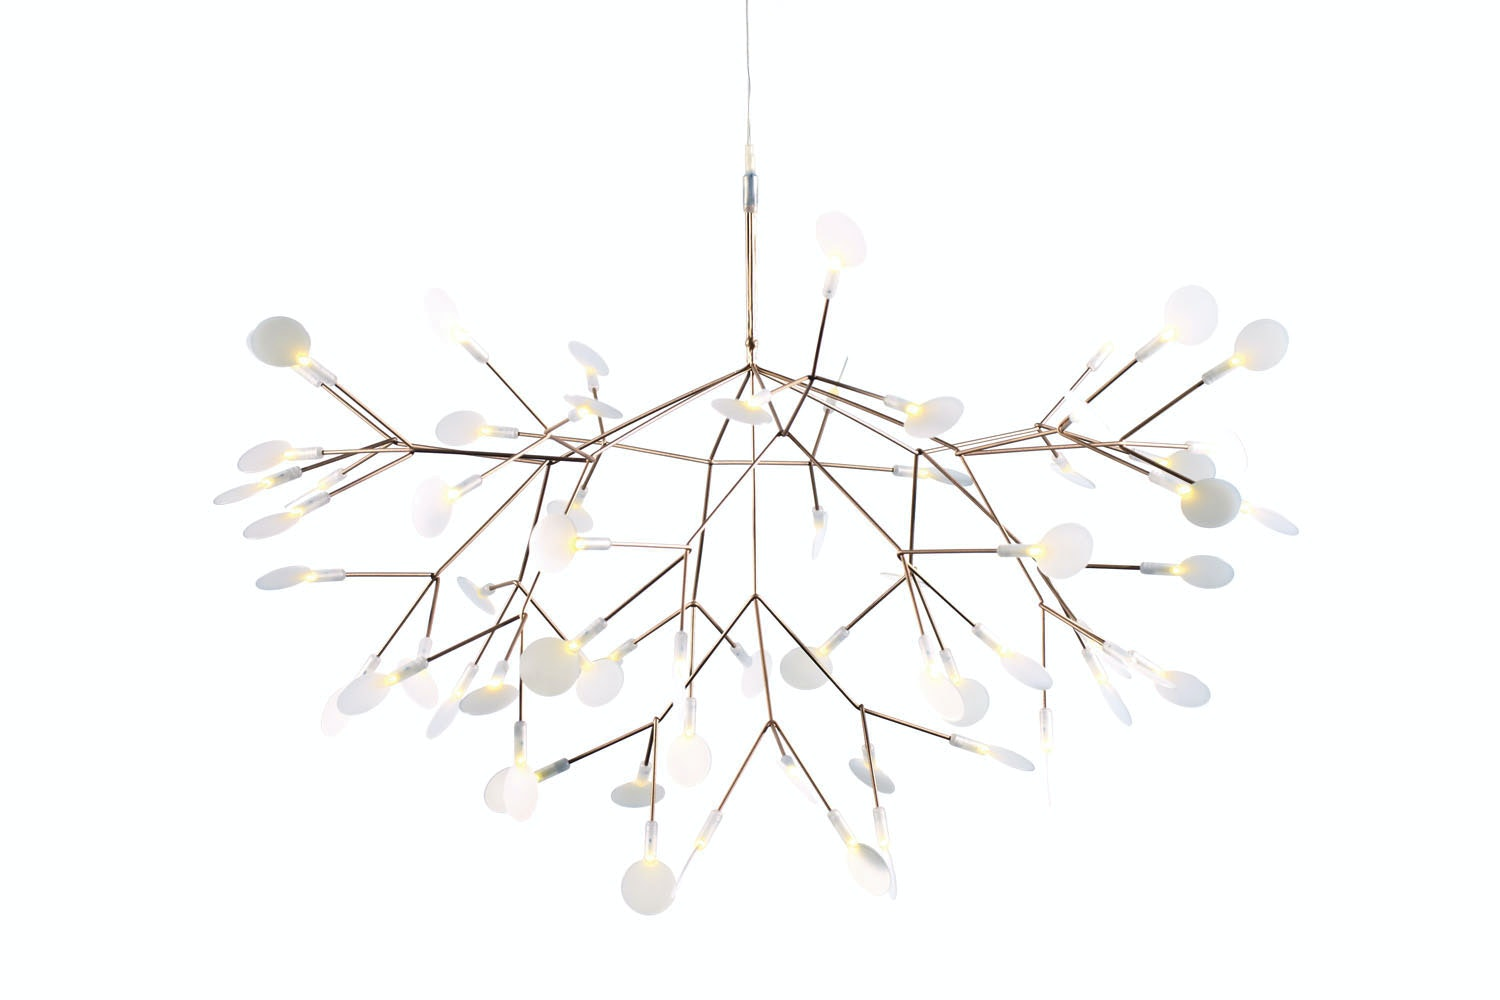 Heracleum II Suspension Lamp by Bertjan Pot for Moooi